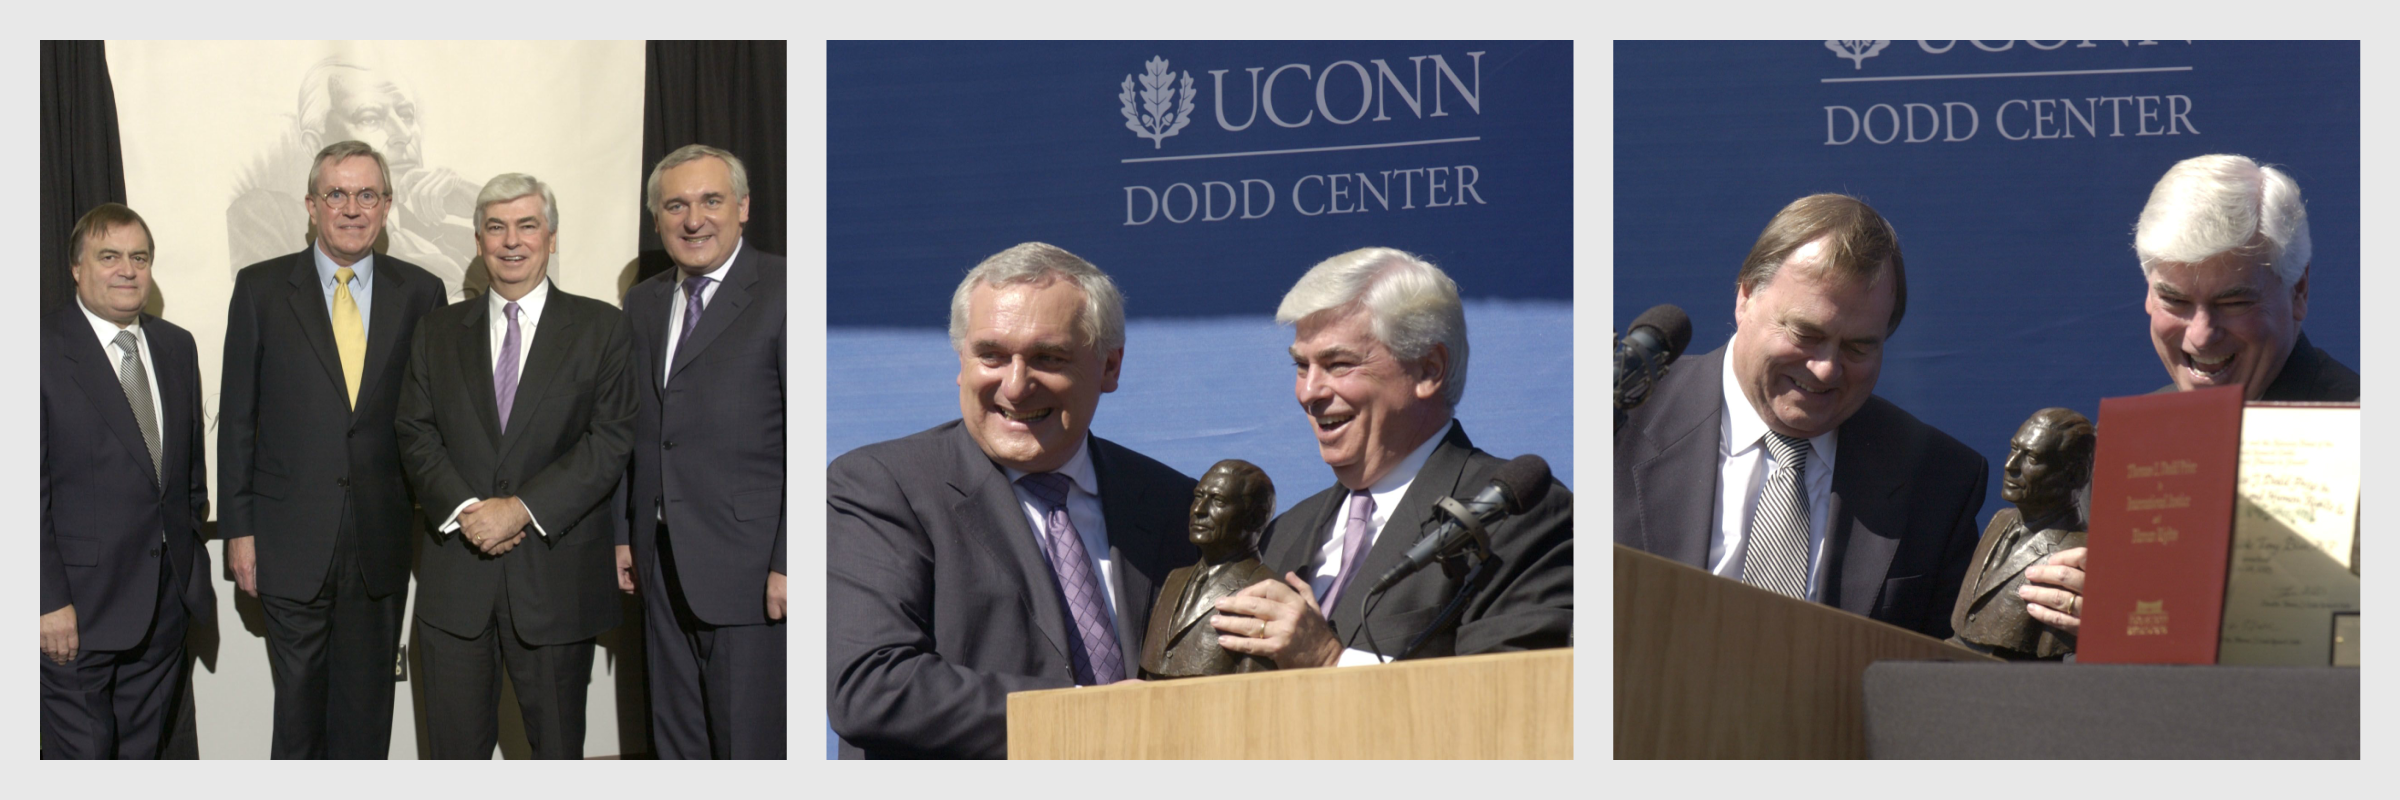 2003 Dodd Prize Ceremony Photo Collection